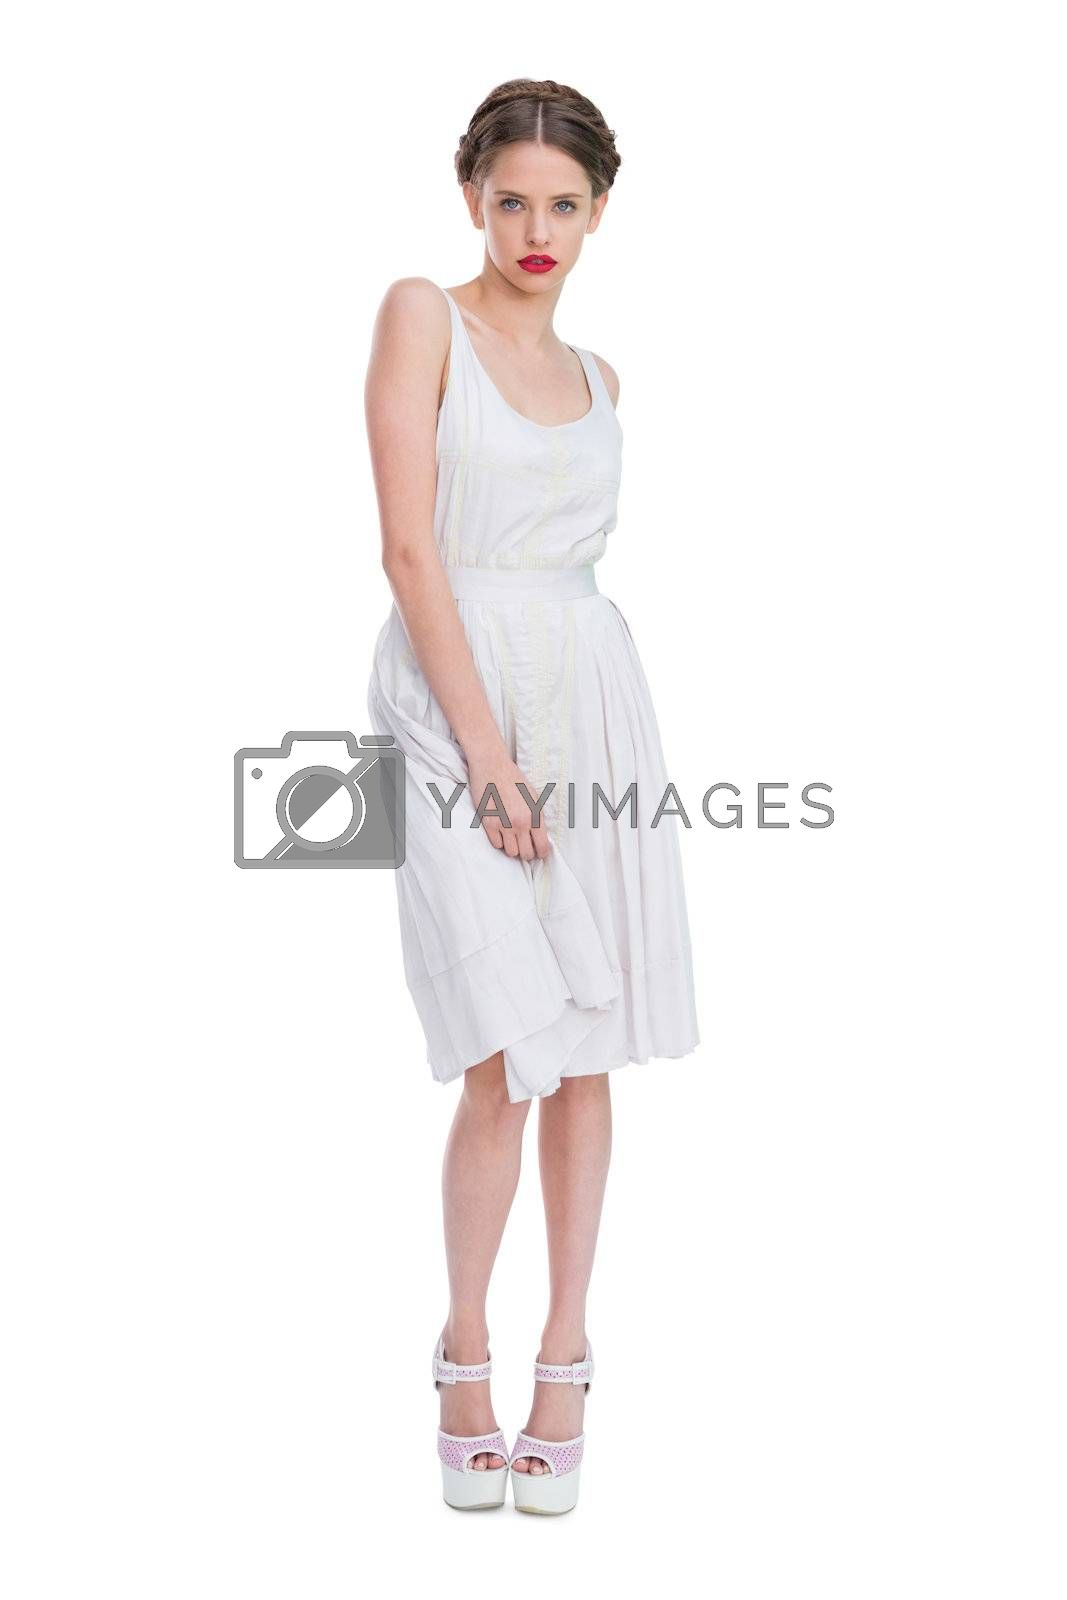 Attractive woman wearing white summer dress standing by Wavebreakmedia